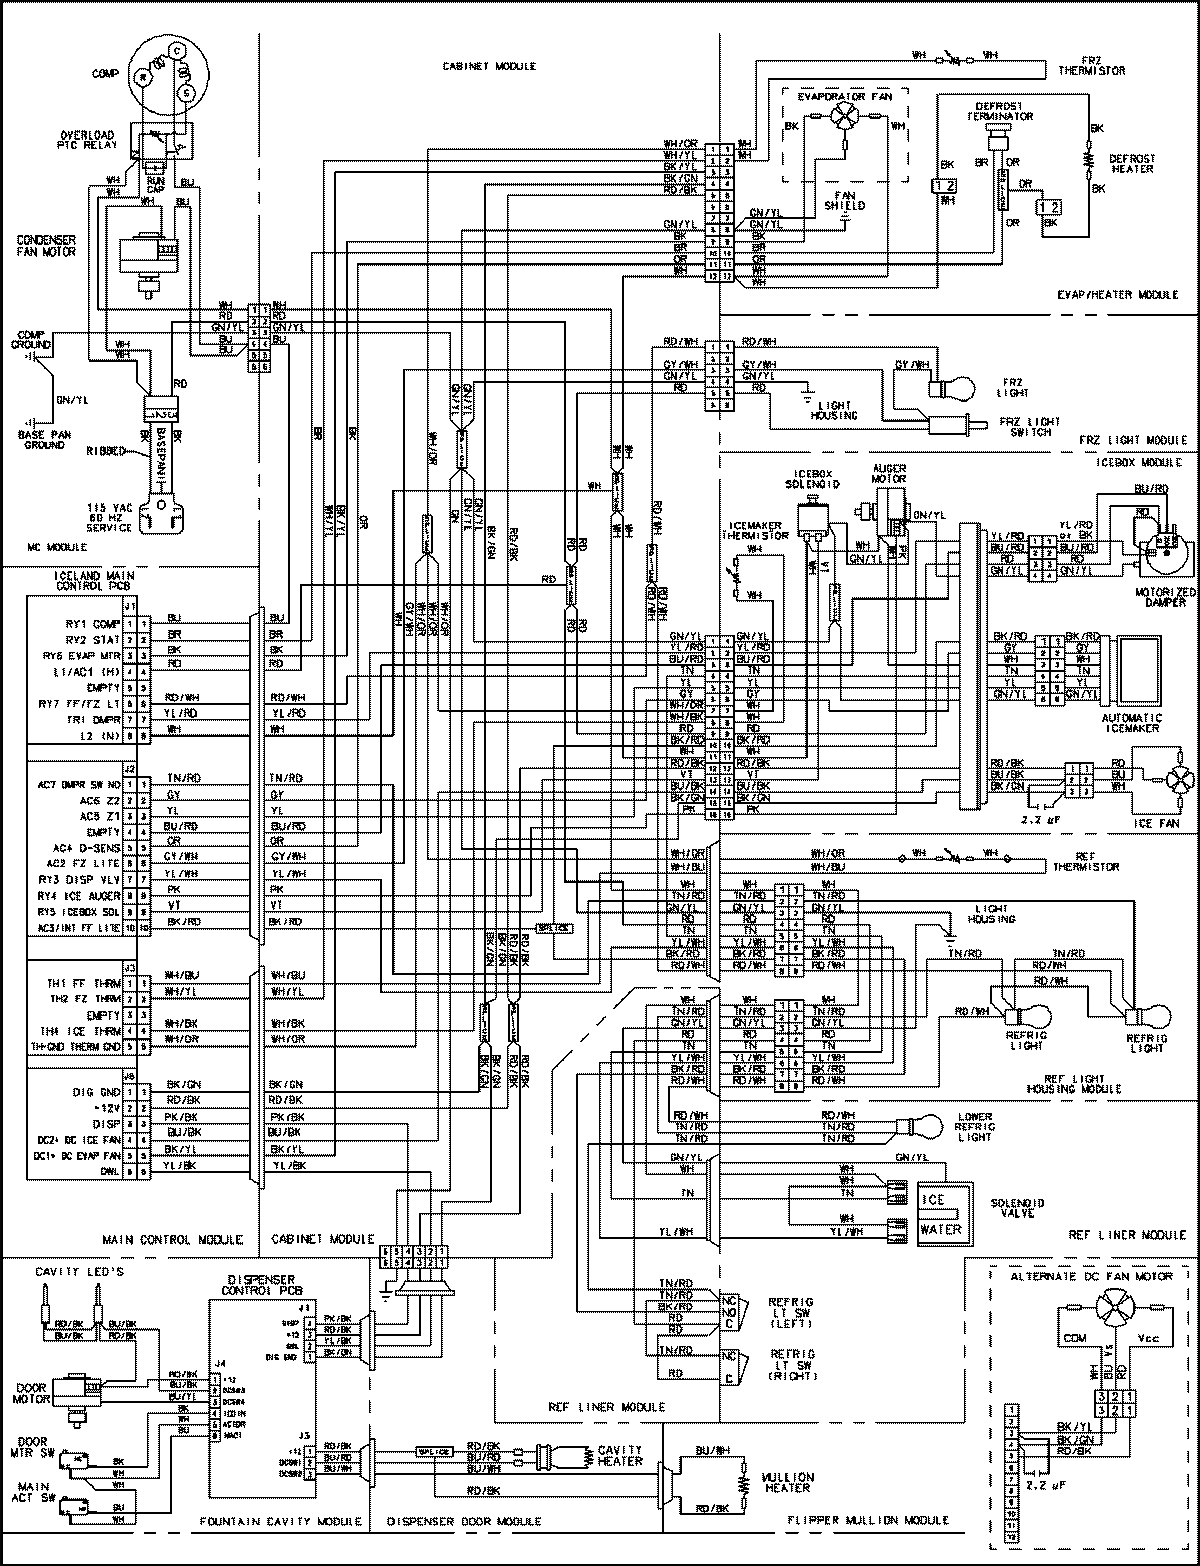 ge dryer start switch wiring diagram Collection-Ge Dryer Wiring Diagram Yirenlu Me Mesmerizing Wire Blurts 10-k